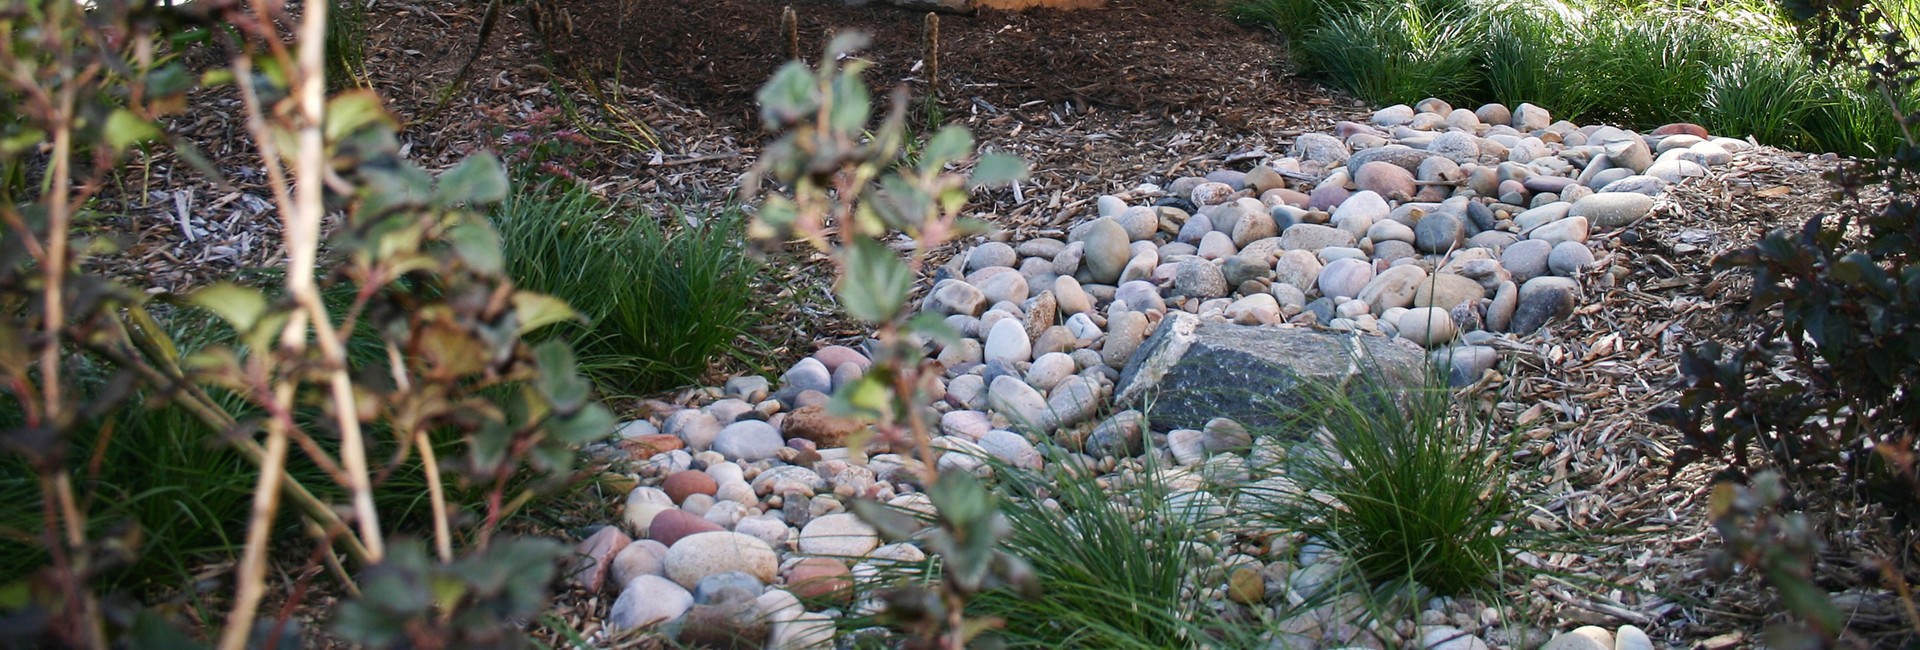 10, Students From Omaha Northwest High School And The University Of  Nebraska At Omaha (UNO) Will Present Final Designs For A Rain Garden To Be  Installed At ...